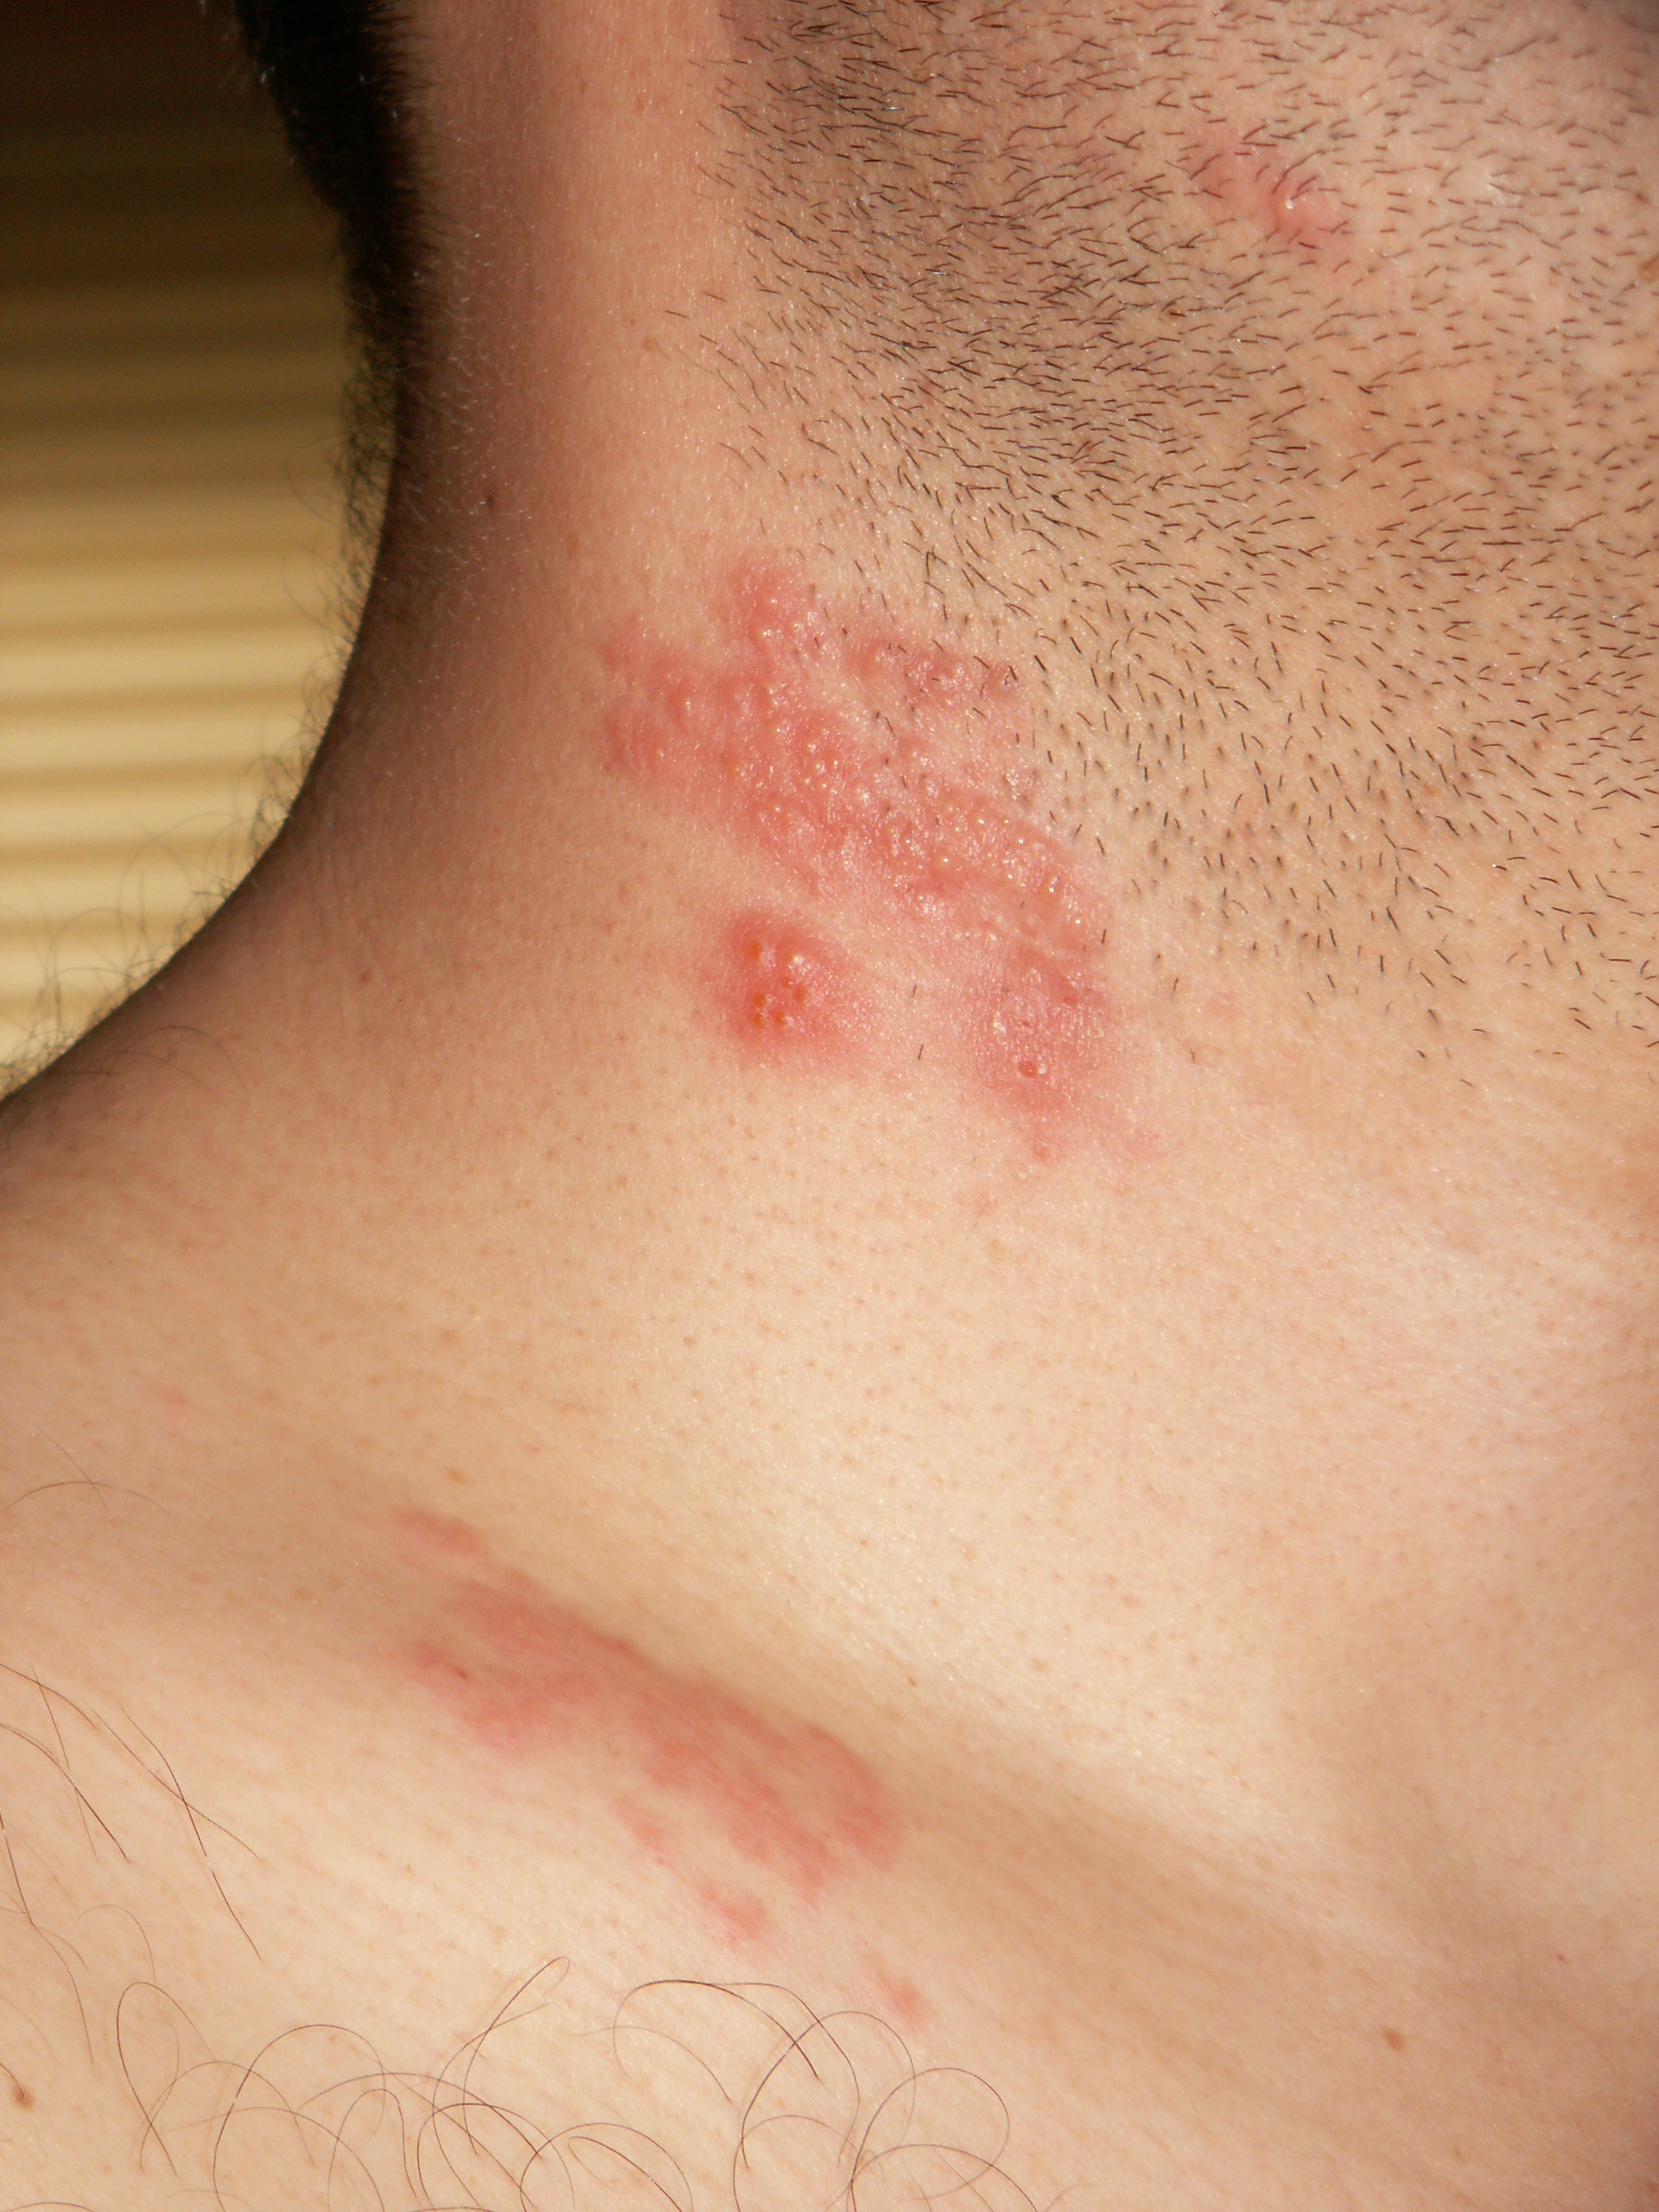 is shingles and hpv virus)